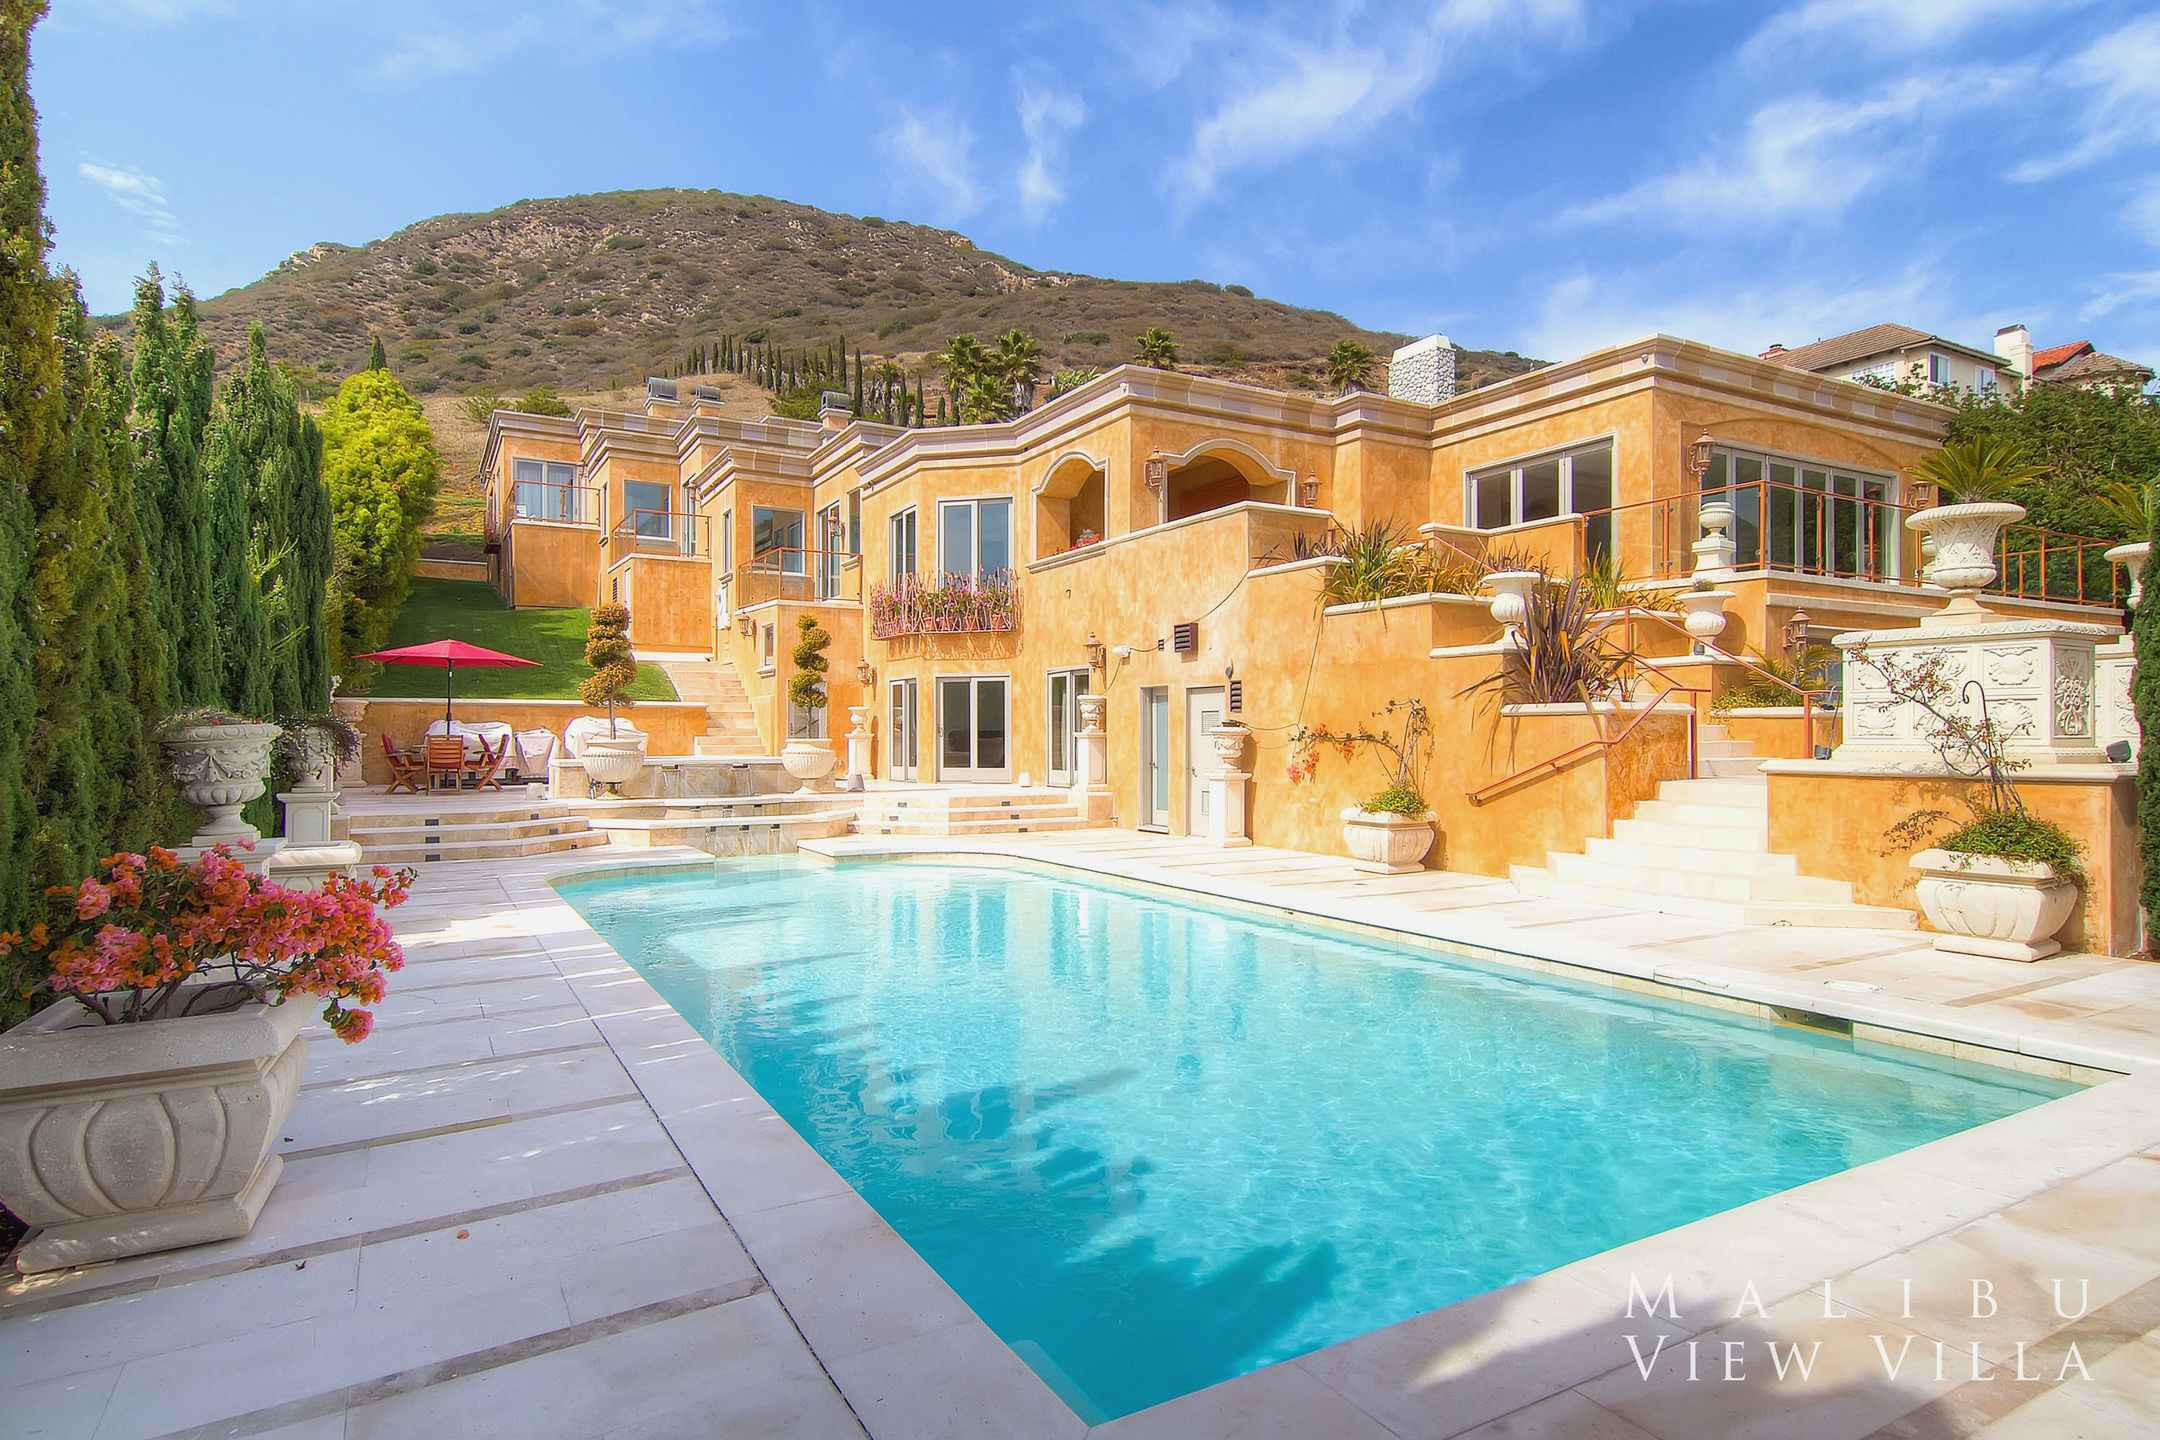 vase rentals los angeles of inspirational renting a beach house for a wedding wedding theme for vacation homes 5 bed malibu homes browse rentals